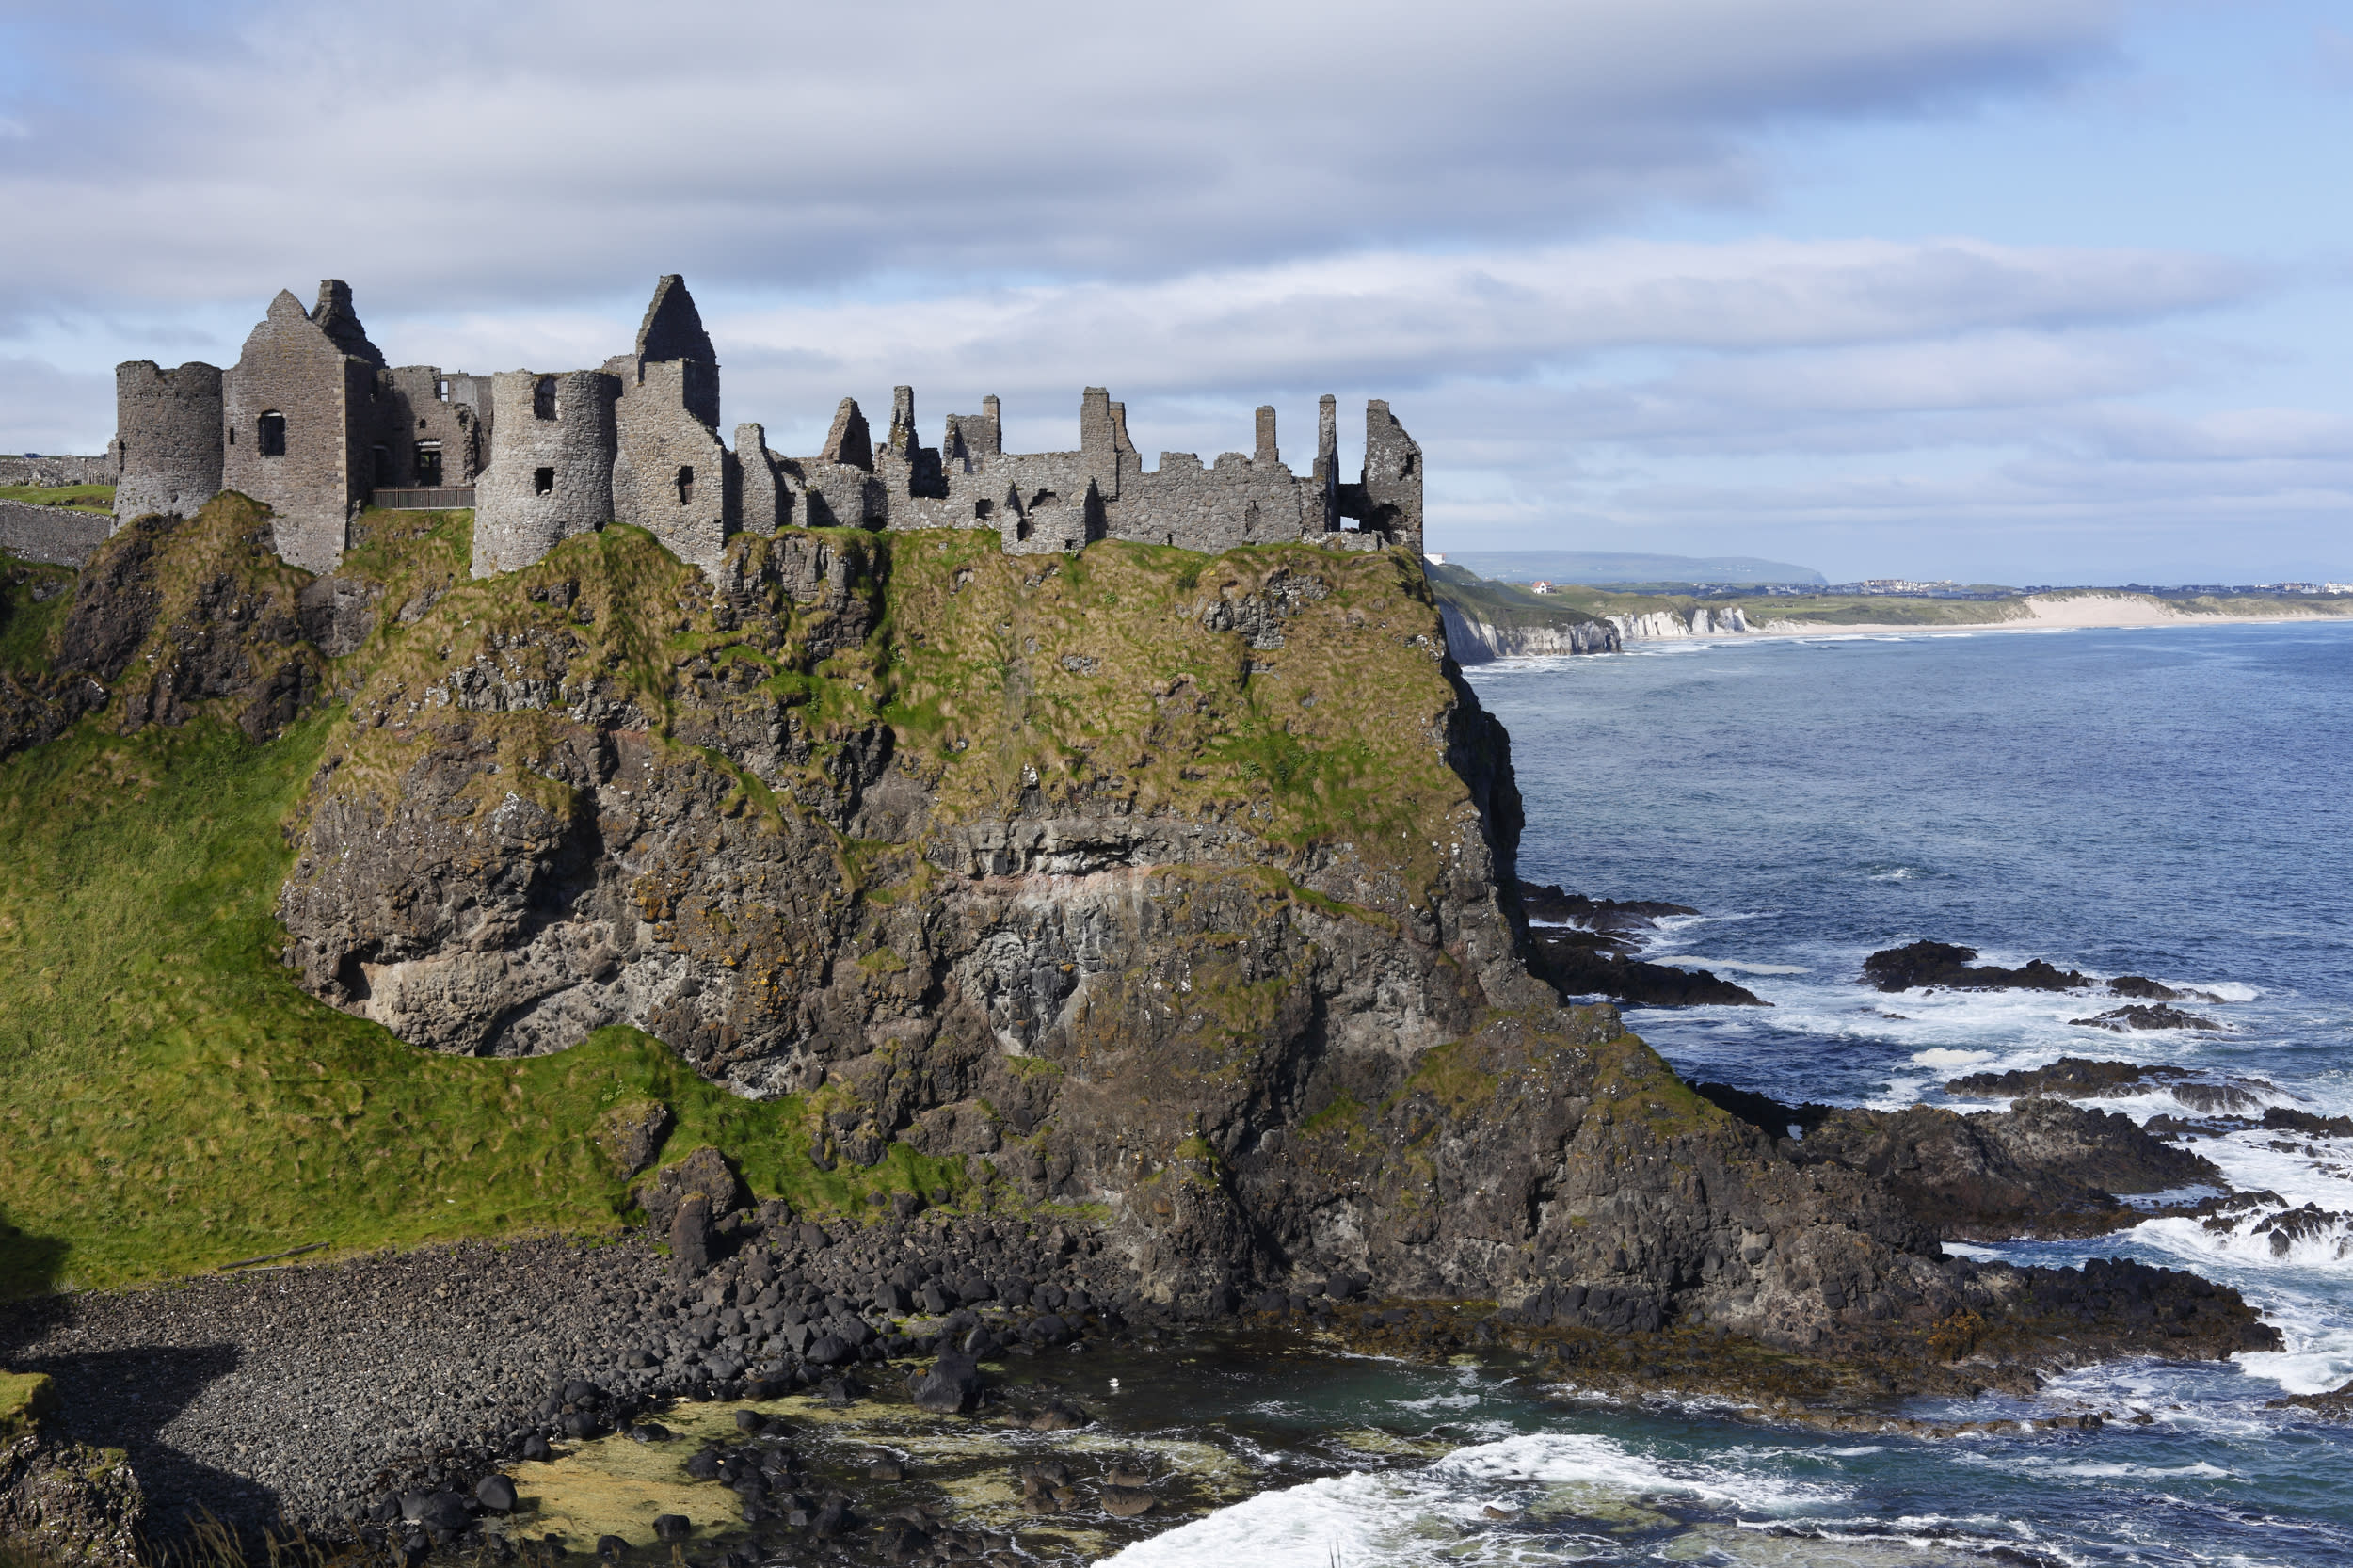 """<p><strong>GOT location</strong>: House of Greyjoy</p>  <p><strong>Real life location</strong>: Dunluce Castle, Northern Ireland</p>  <p>Visit Northern Ireland and you'll be in reach of several GOT filming locations -- like the House of Greyjoy.</p>  <p><a href=""""https://fave.co/2vdSHKZ""""><strong>Book your trip.</strong></a></p>"""